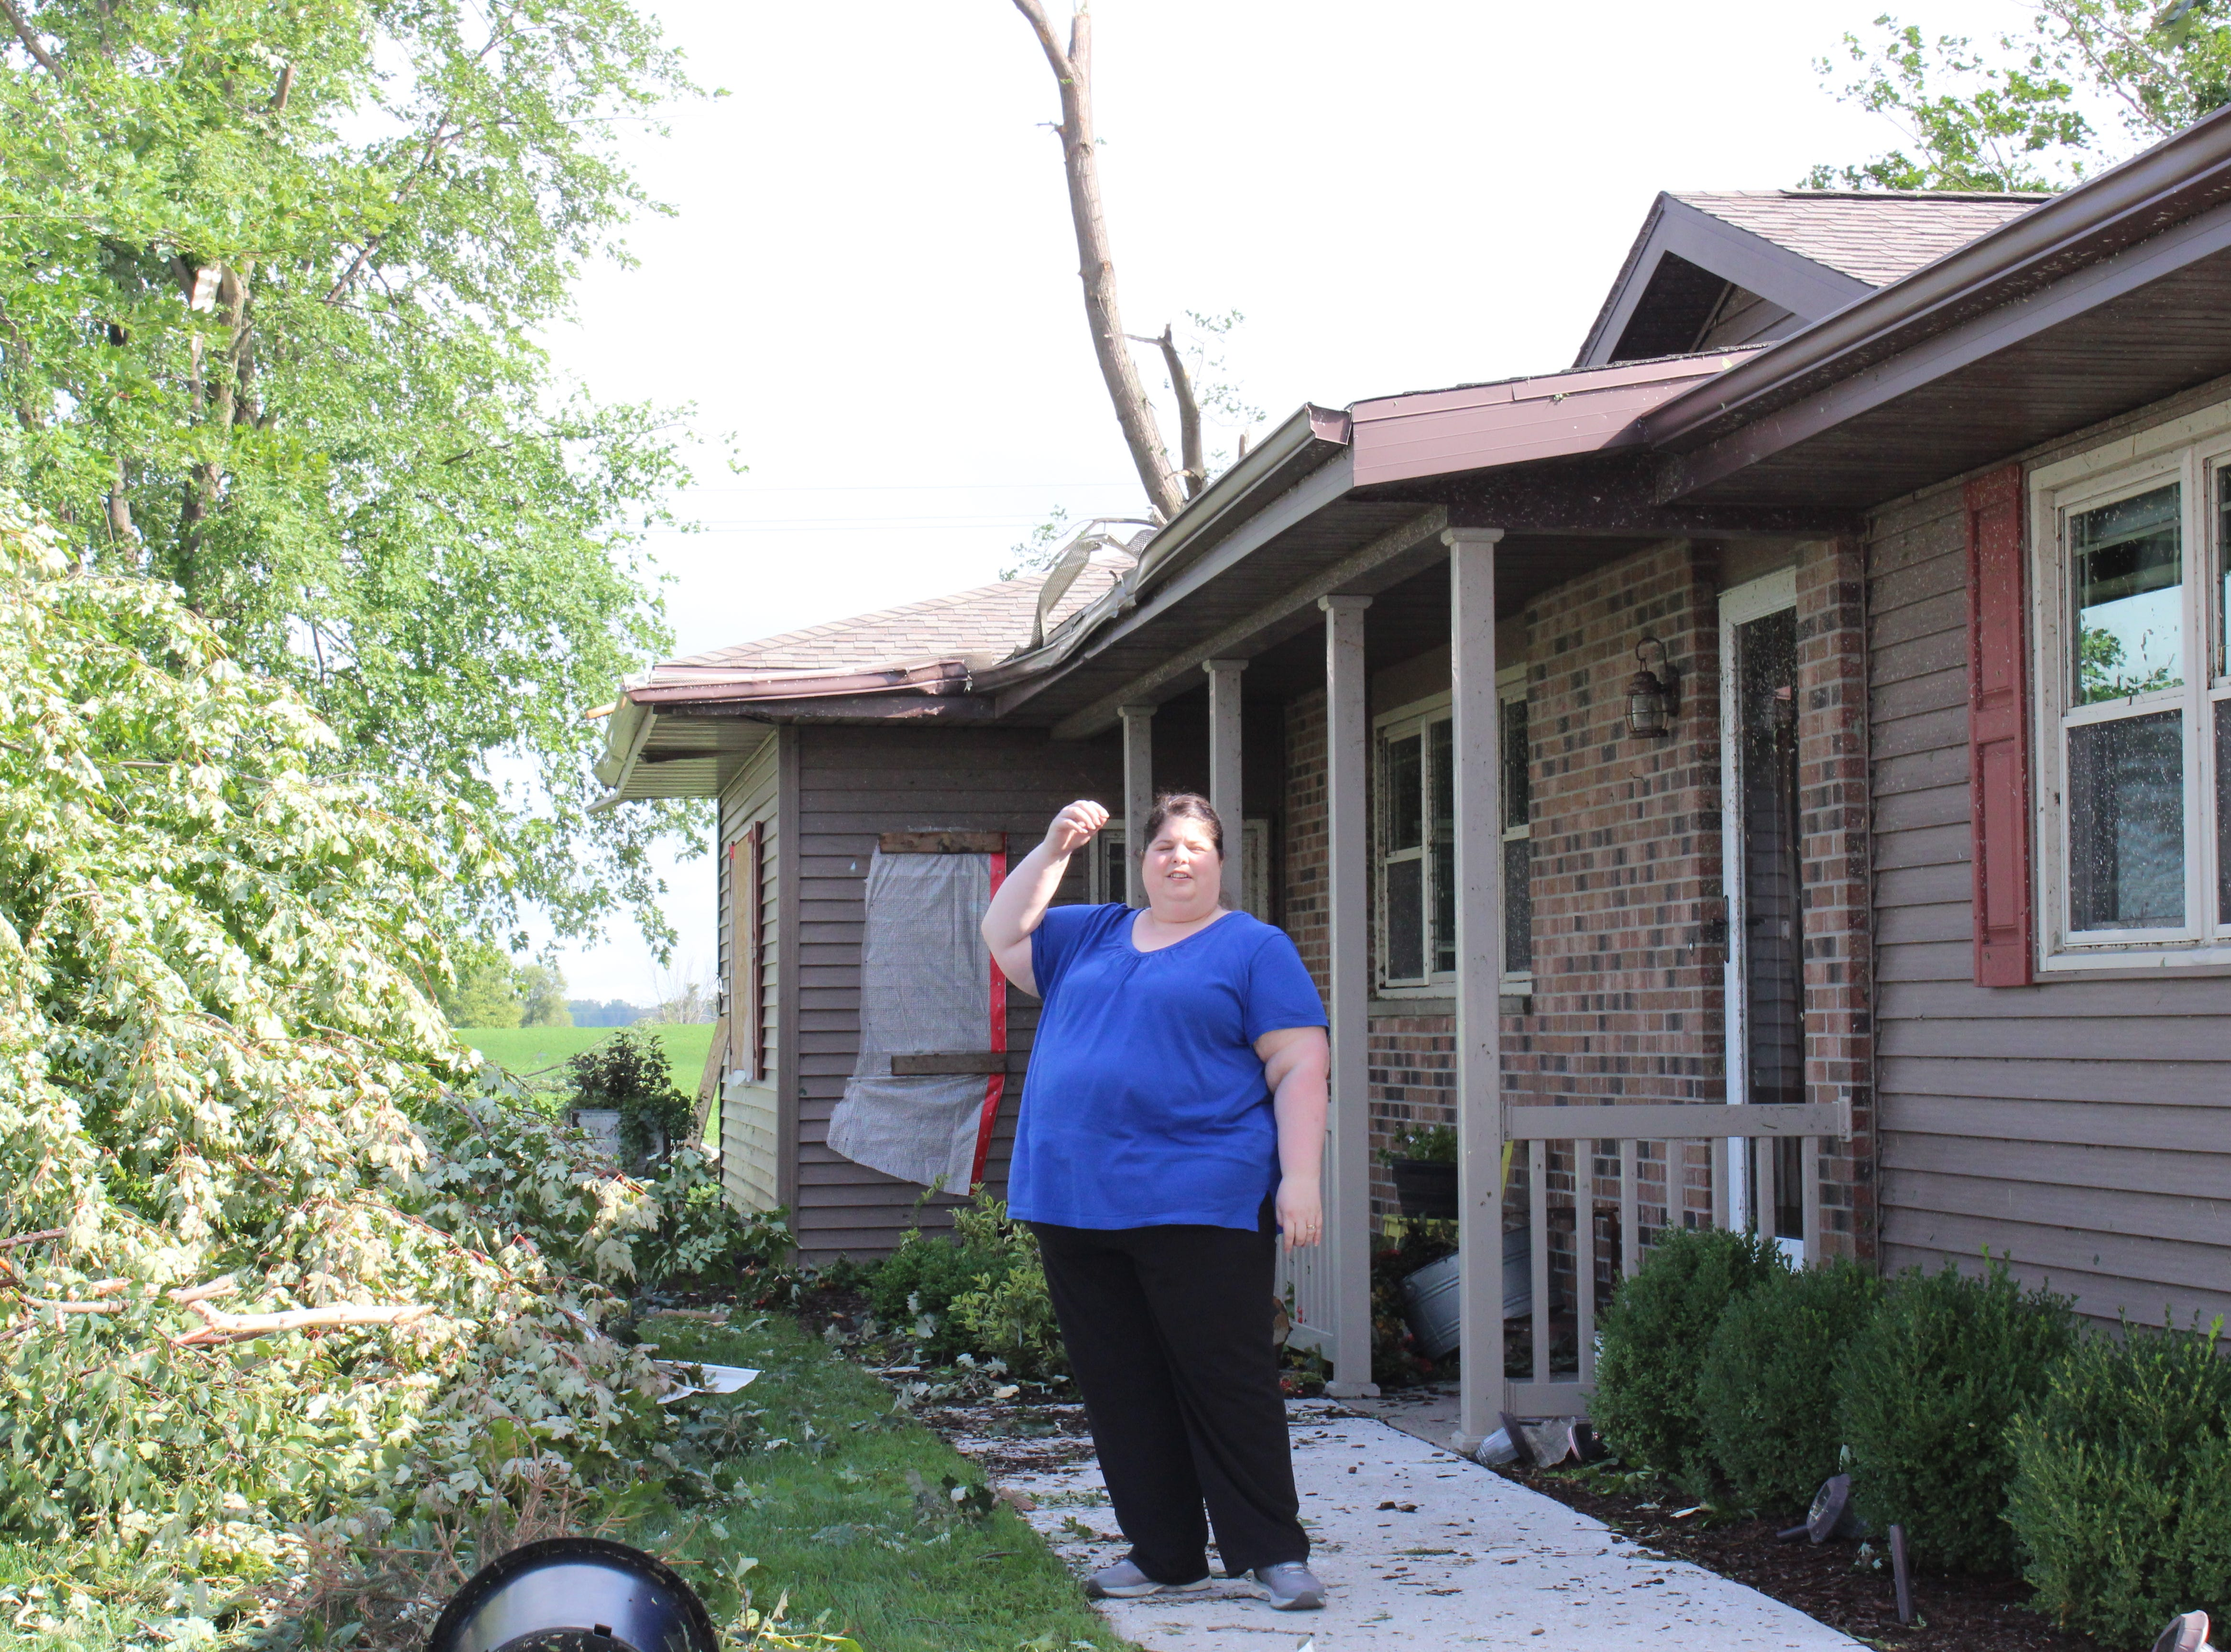 Michelle Wetzel said the strong winds drove two-by-four planks through the walls of her home.